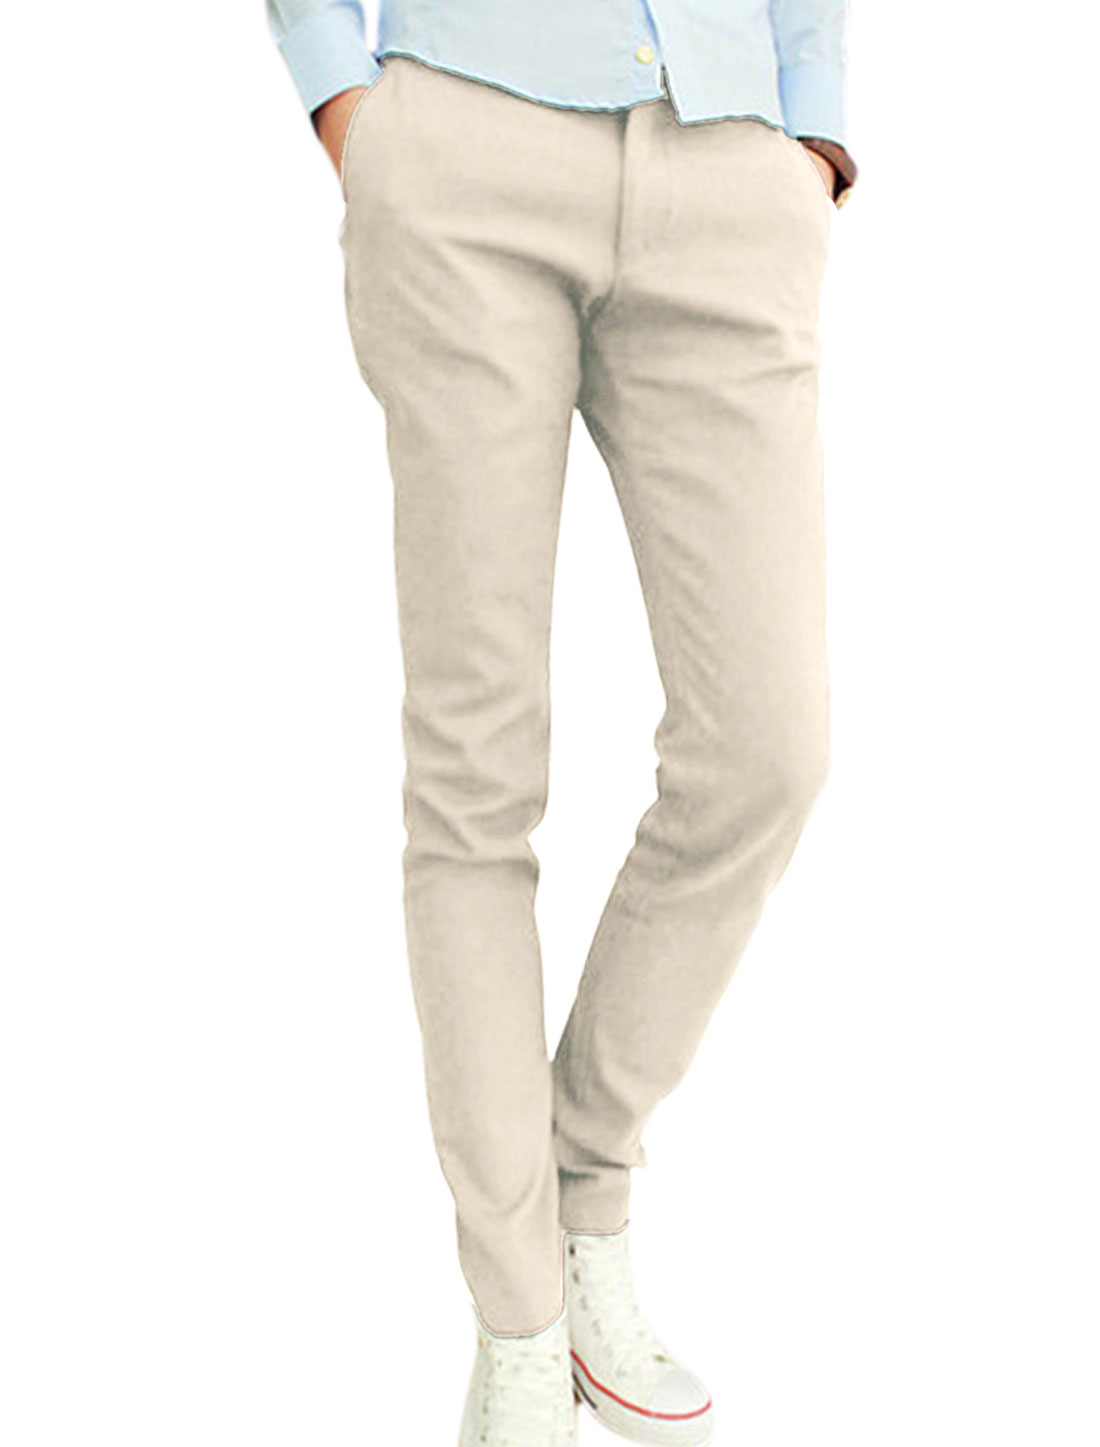 Men NEW Fashion One Button Up Fake Pockets Back Leisure Pants Beige W30